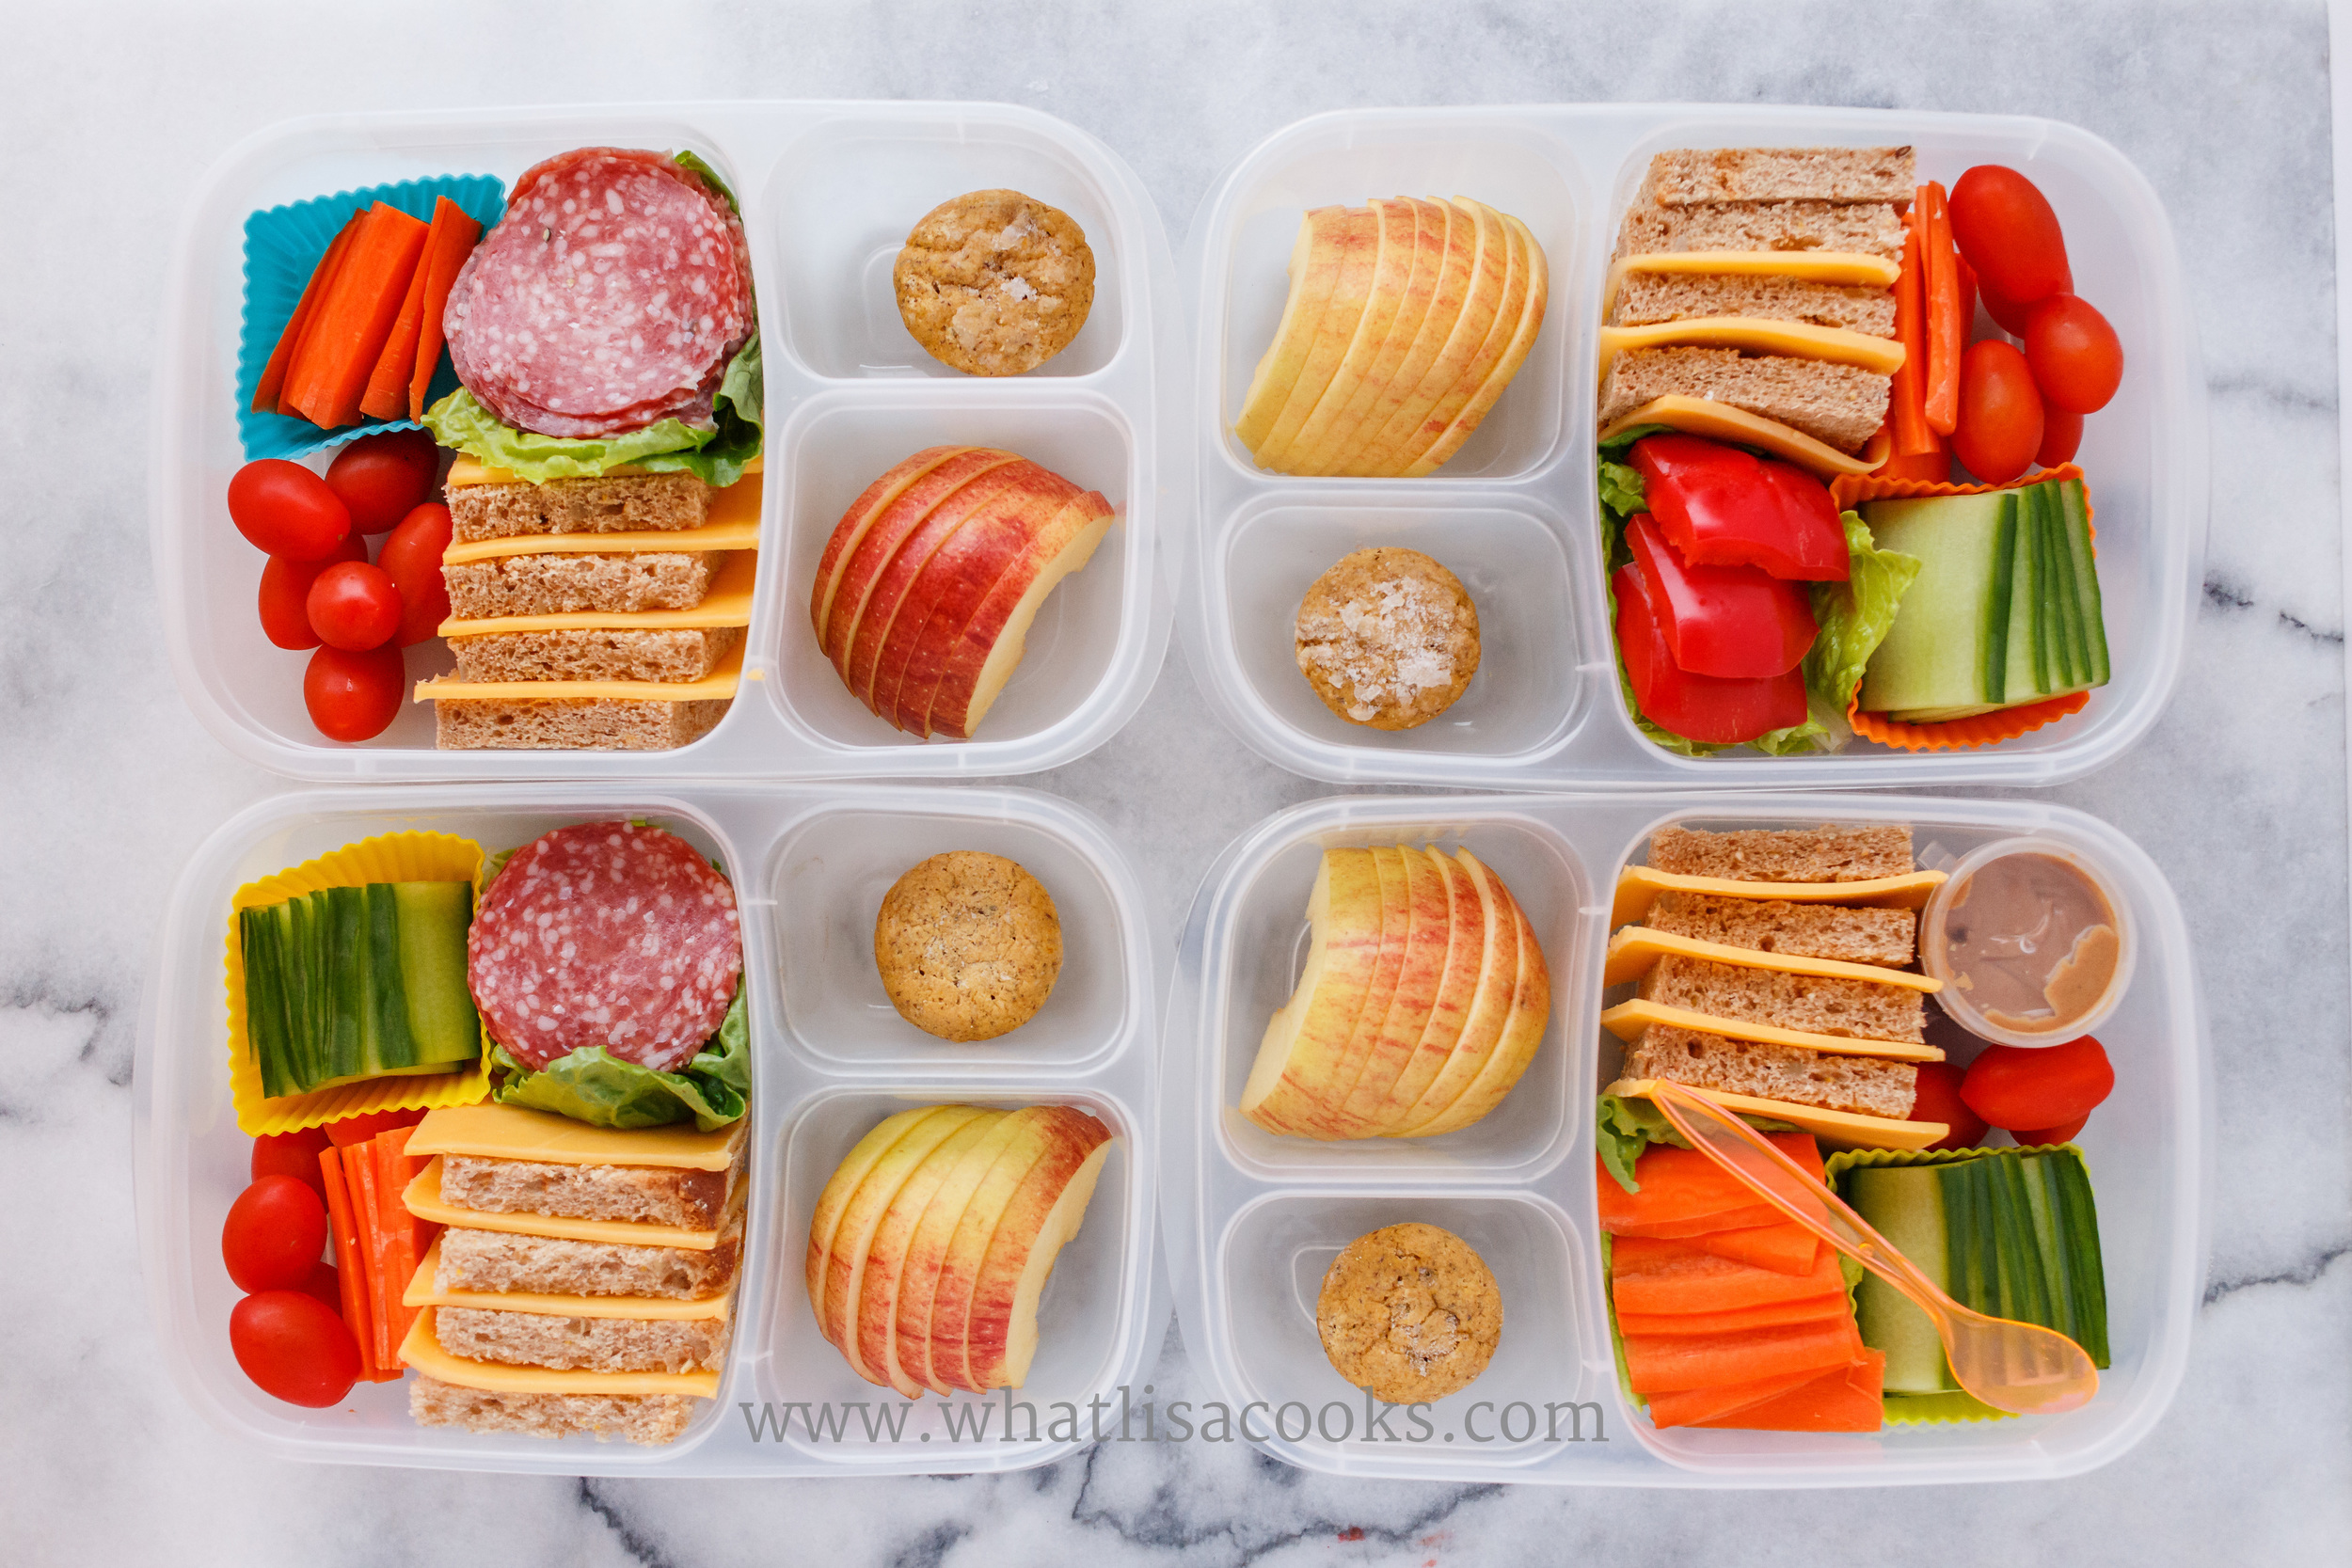 This is one of our favorite lunches - the sandwich kit.  I give them bread, cheese, meat, veggies, and they make their own sandwich, or they can just eat all the pieces separately.  One has peanut butter.  They all have apples and a mini muffin.